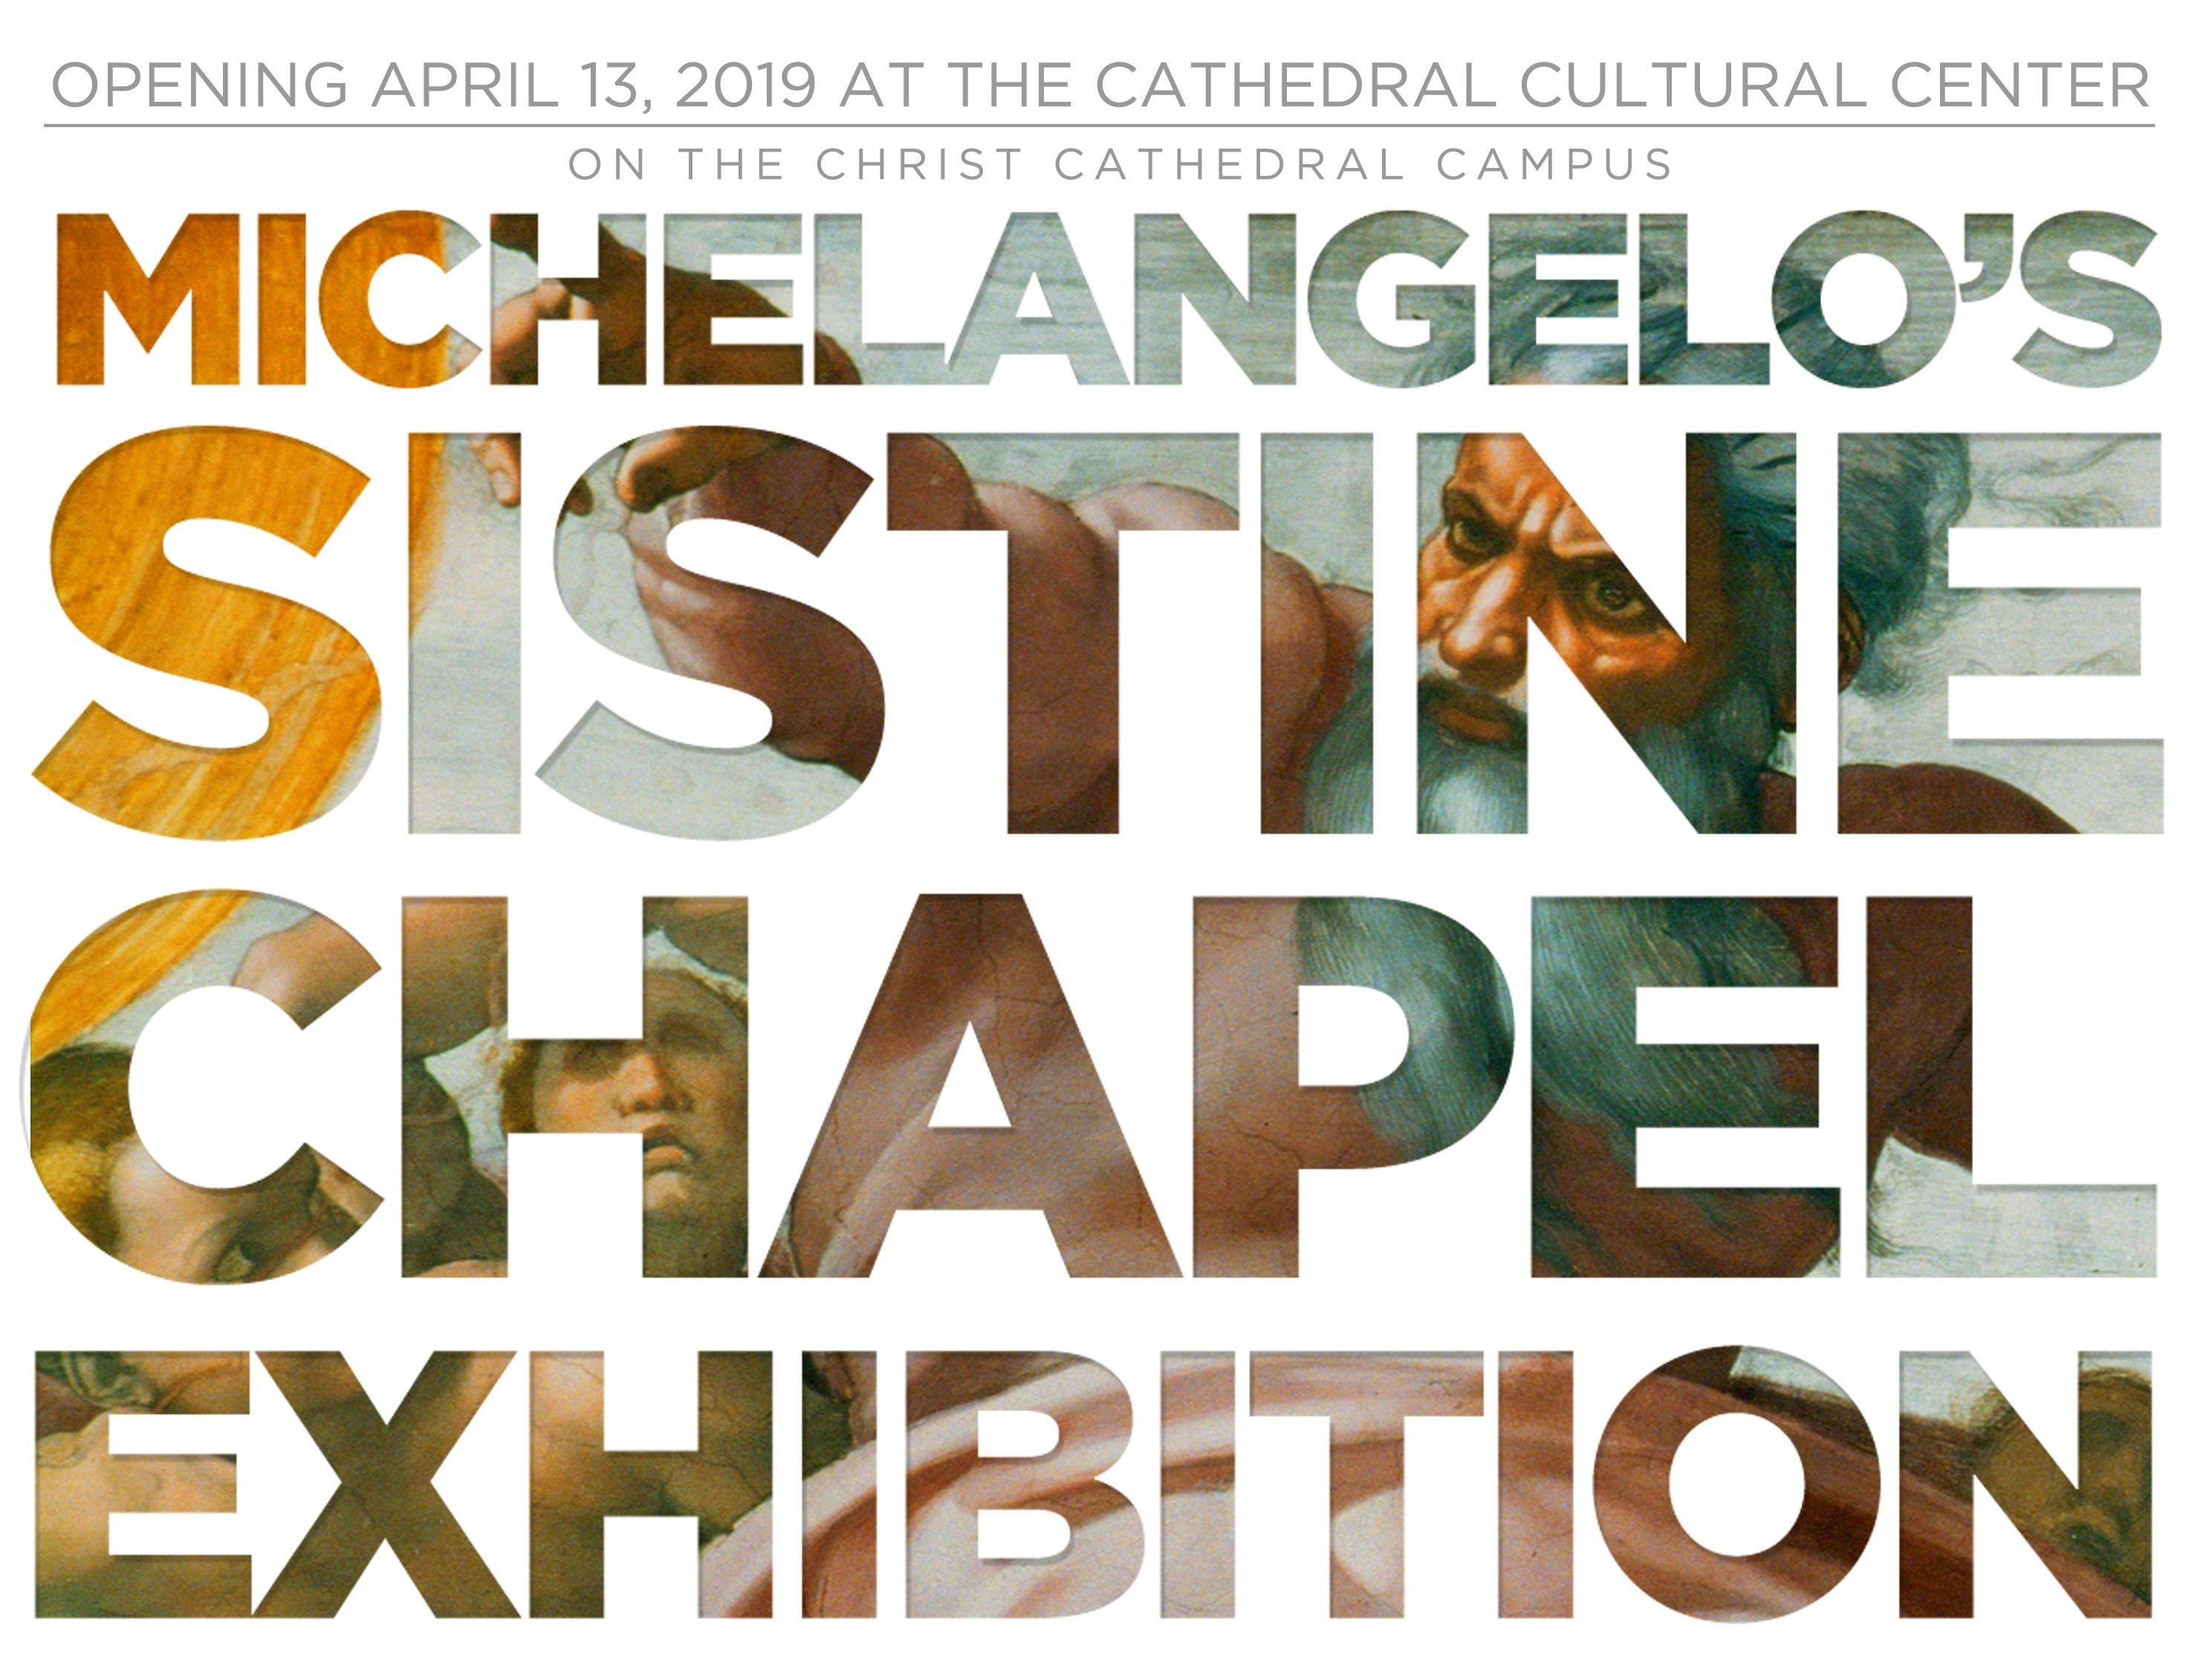 Special Entertainment Events Inc. - Sistine Chapel Exhibit: Main Image